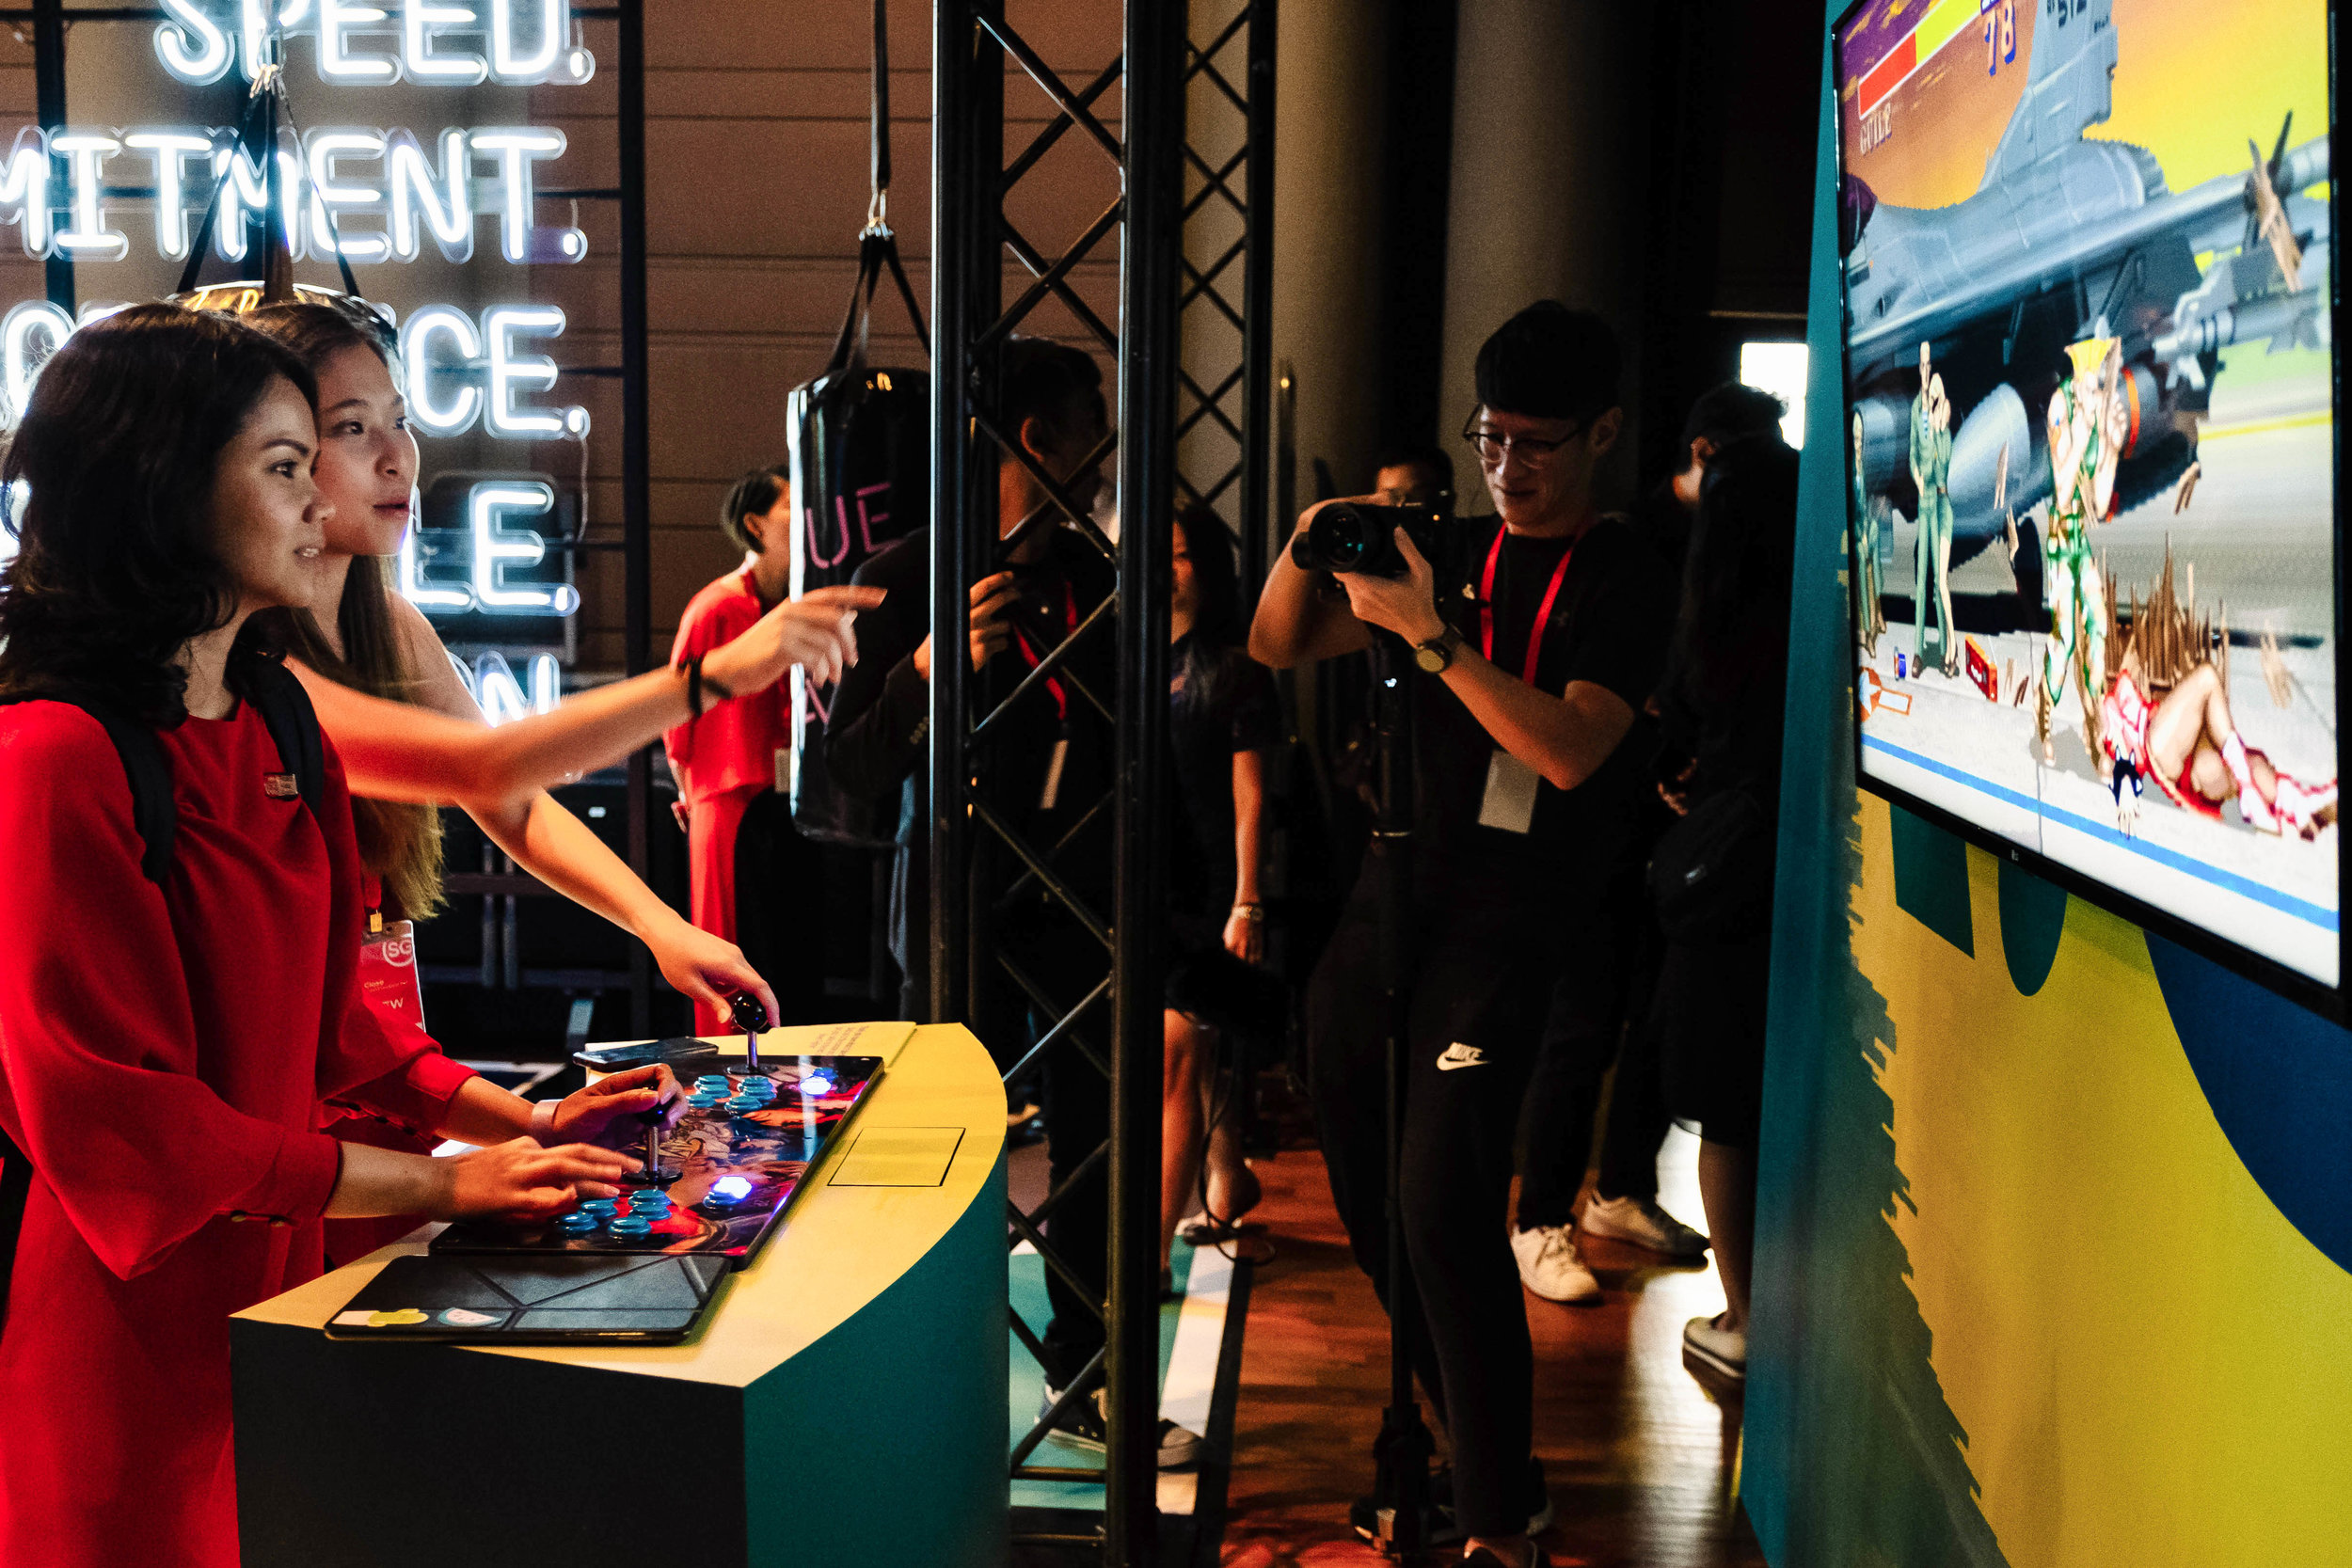 Interactive and immersive: guests hanging out, having fun, and reaching to score new heights